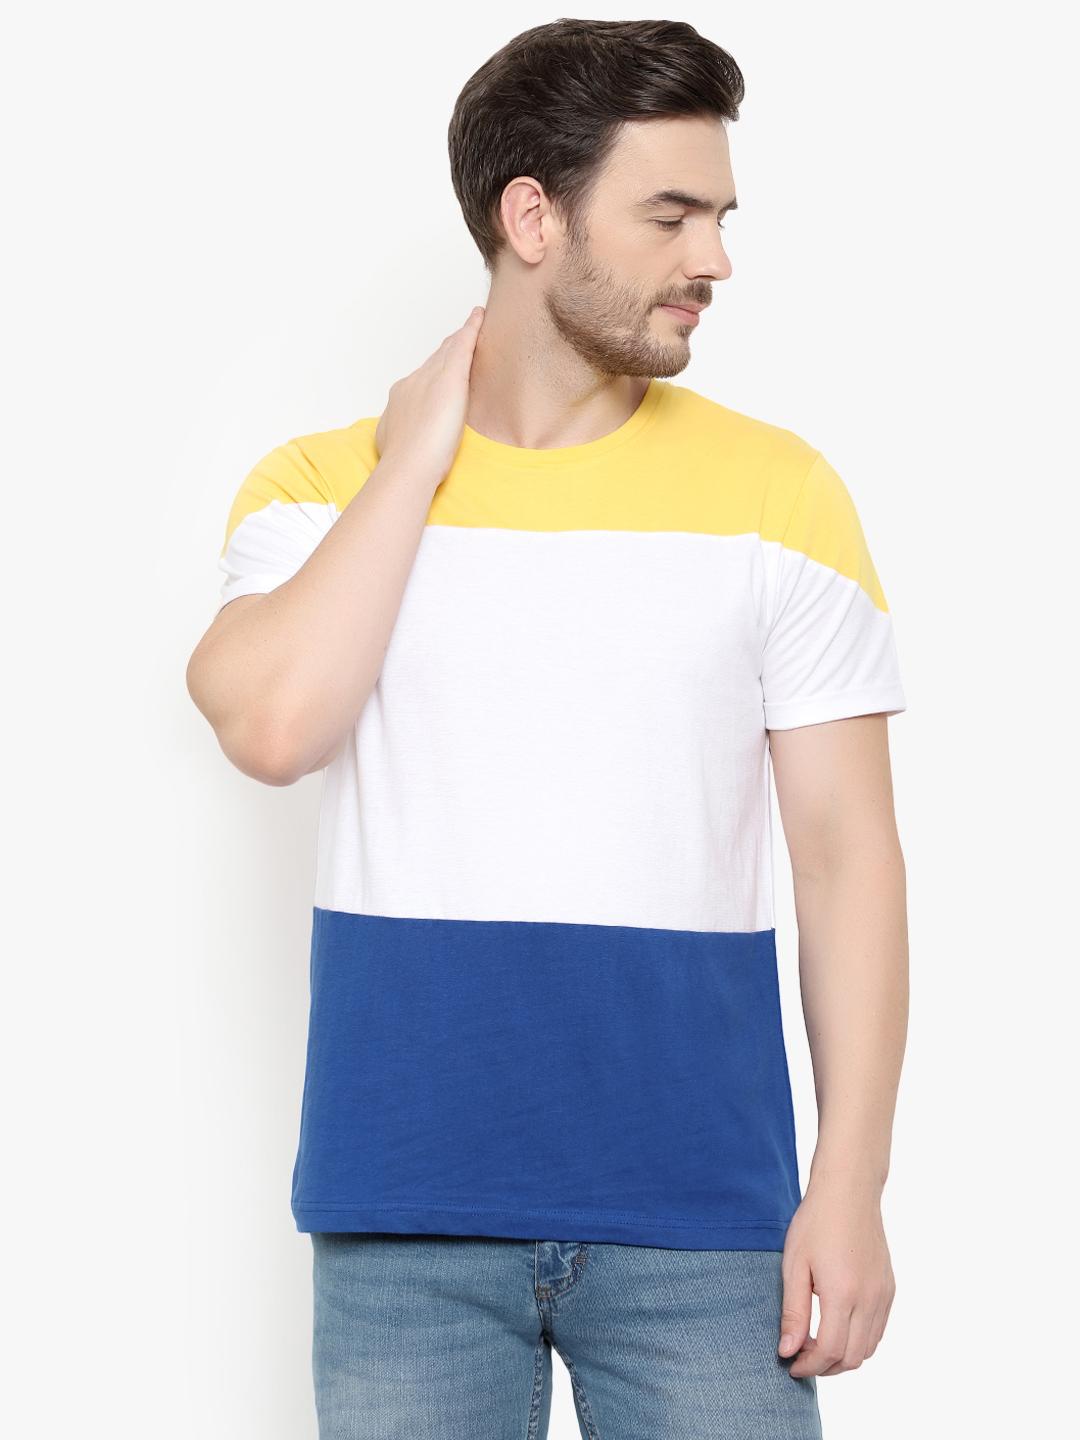 Glito Colorblocked Half Sleeves T-Shirt For Men